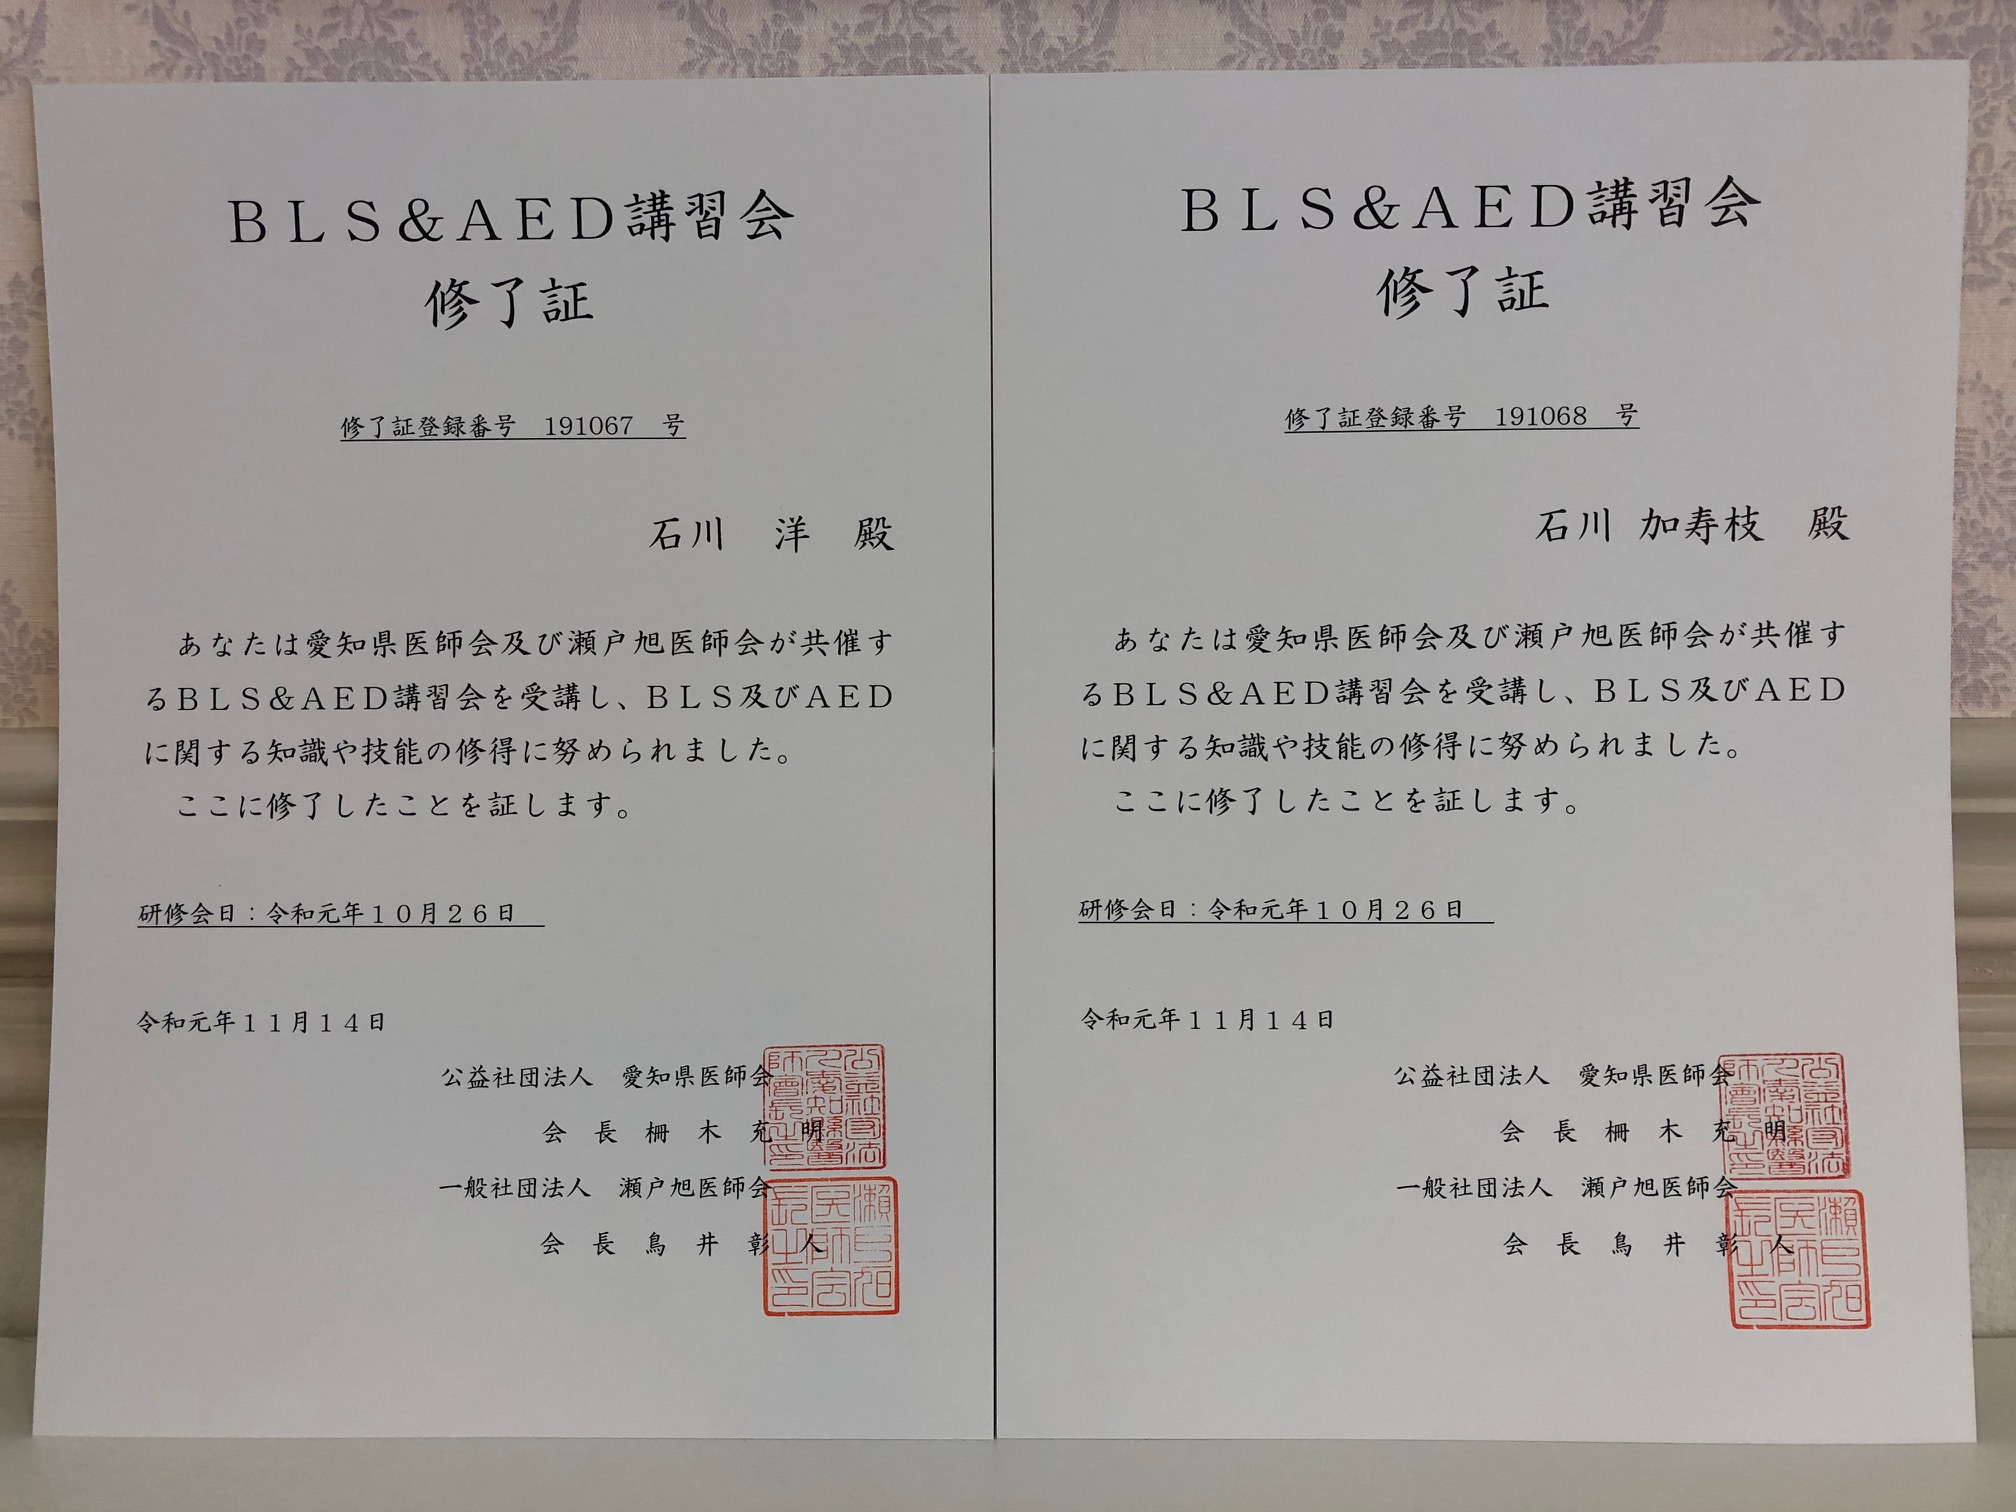 BLS&AED講習会